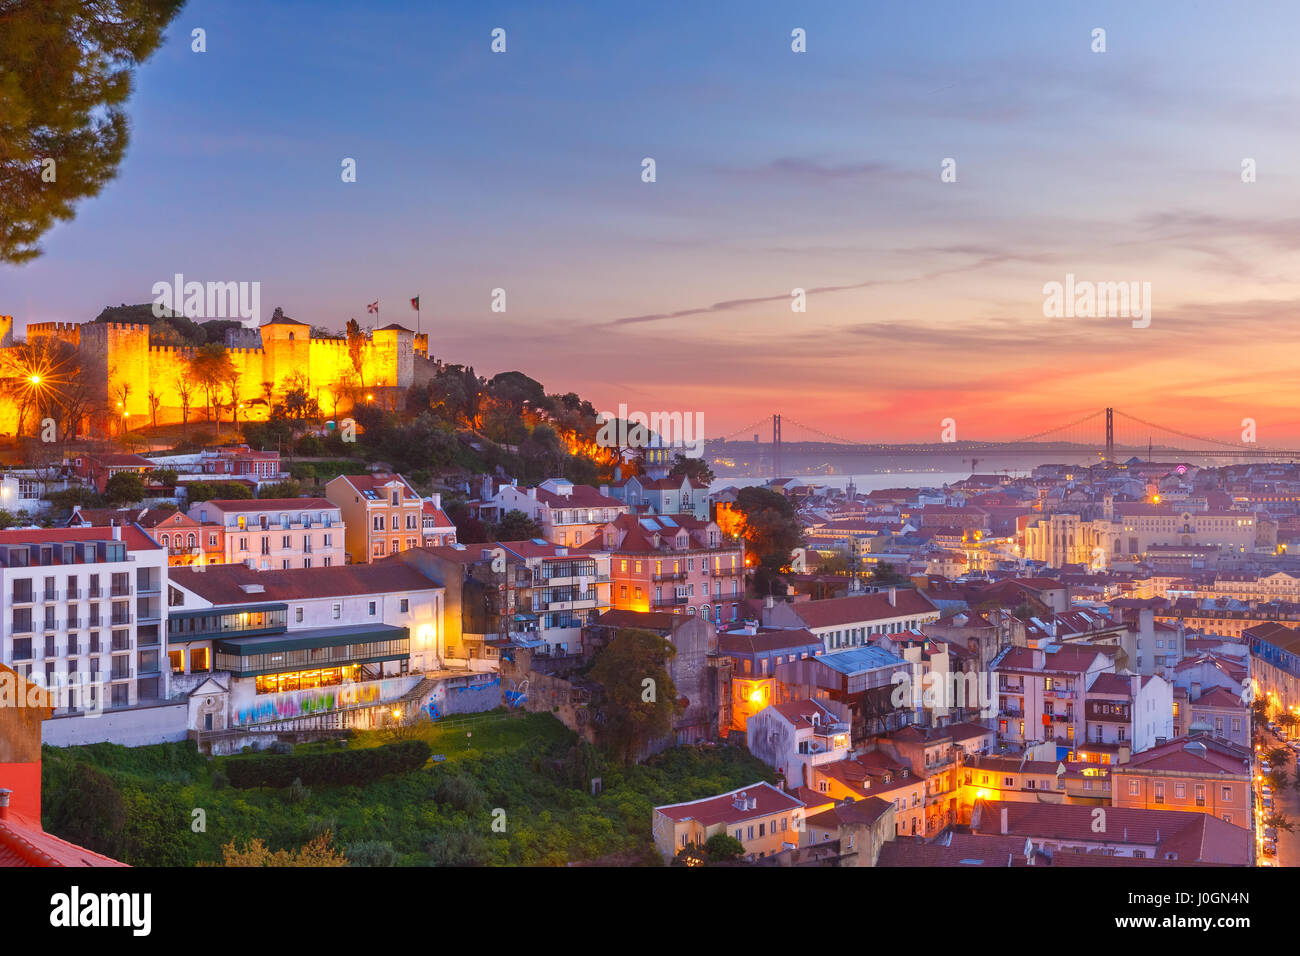 The Castle of Sao Jorge, the historical centre of Lisbon, Tagus River and 25 de Abril Bridge at scenic sunset, Lisbon, - Stock Image